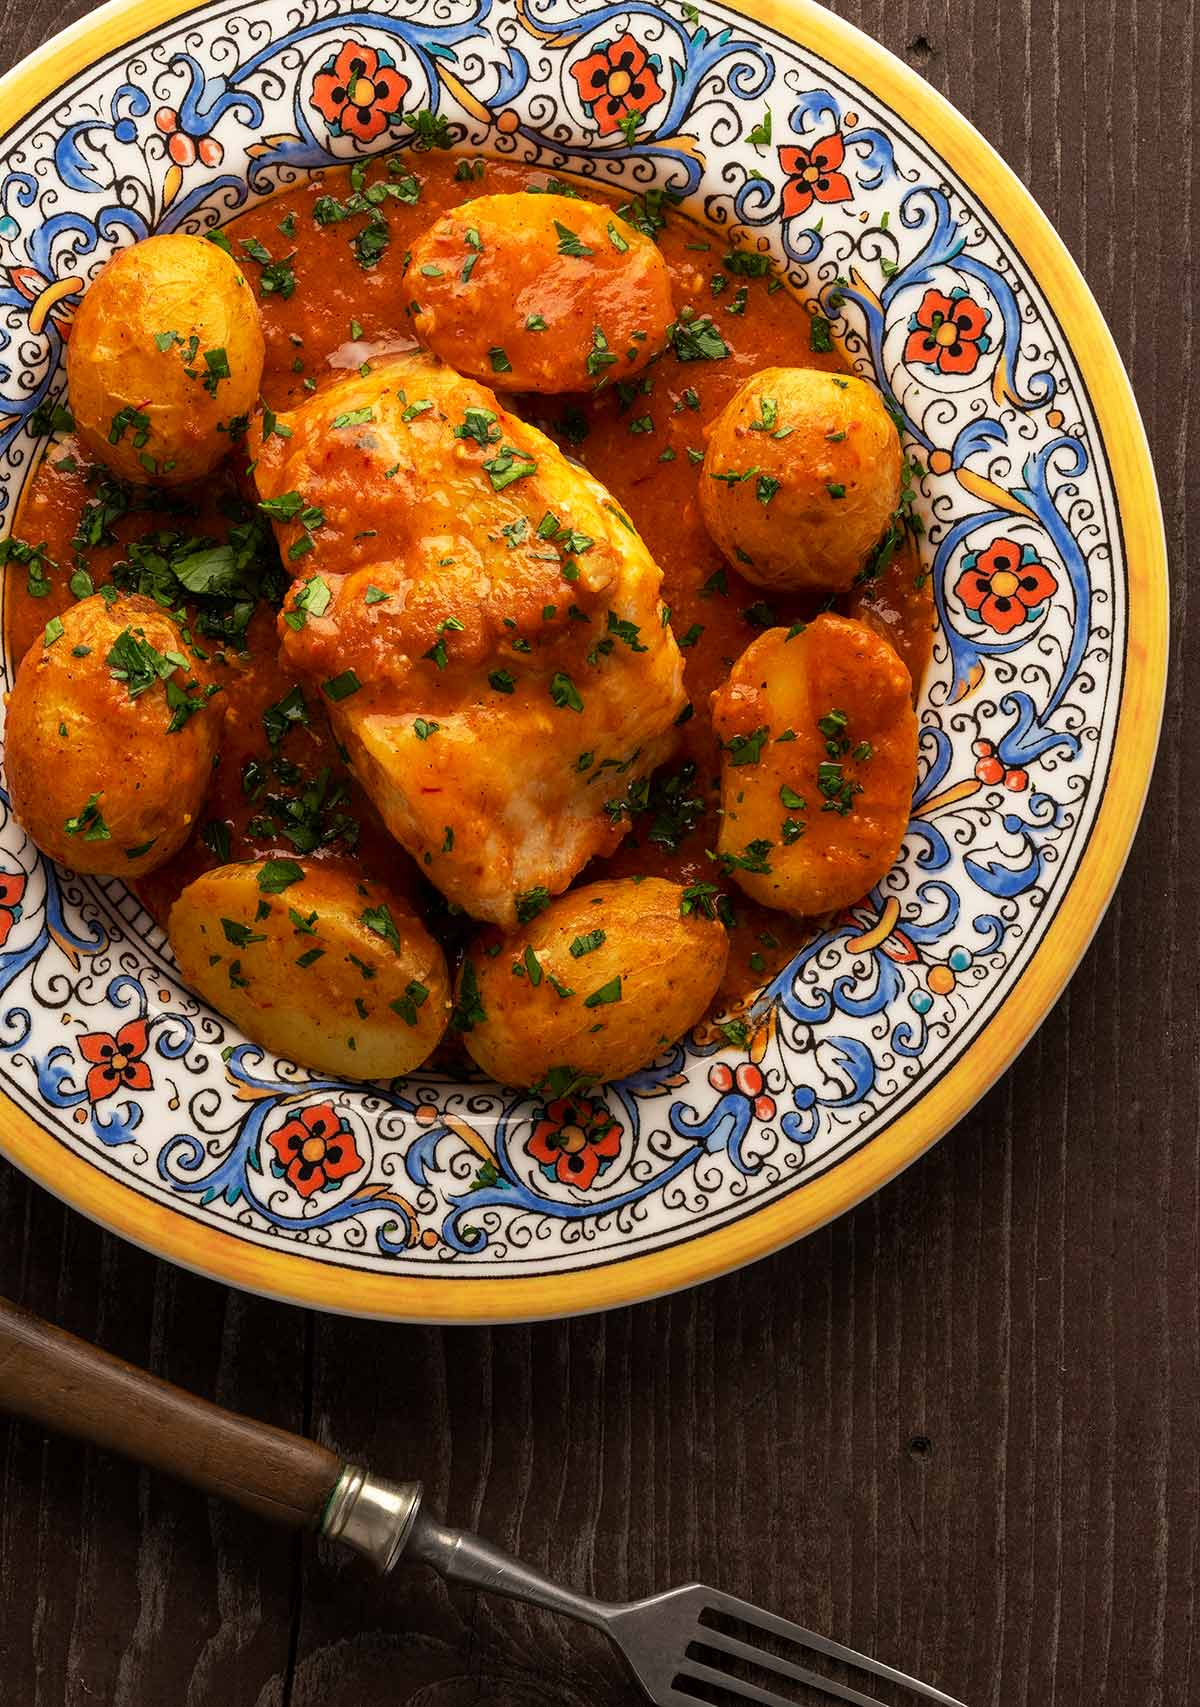 Catalan monkfish recipe on a plate